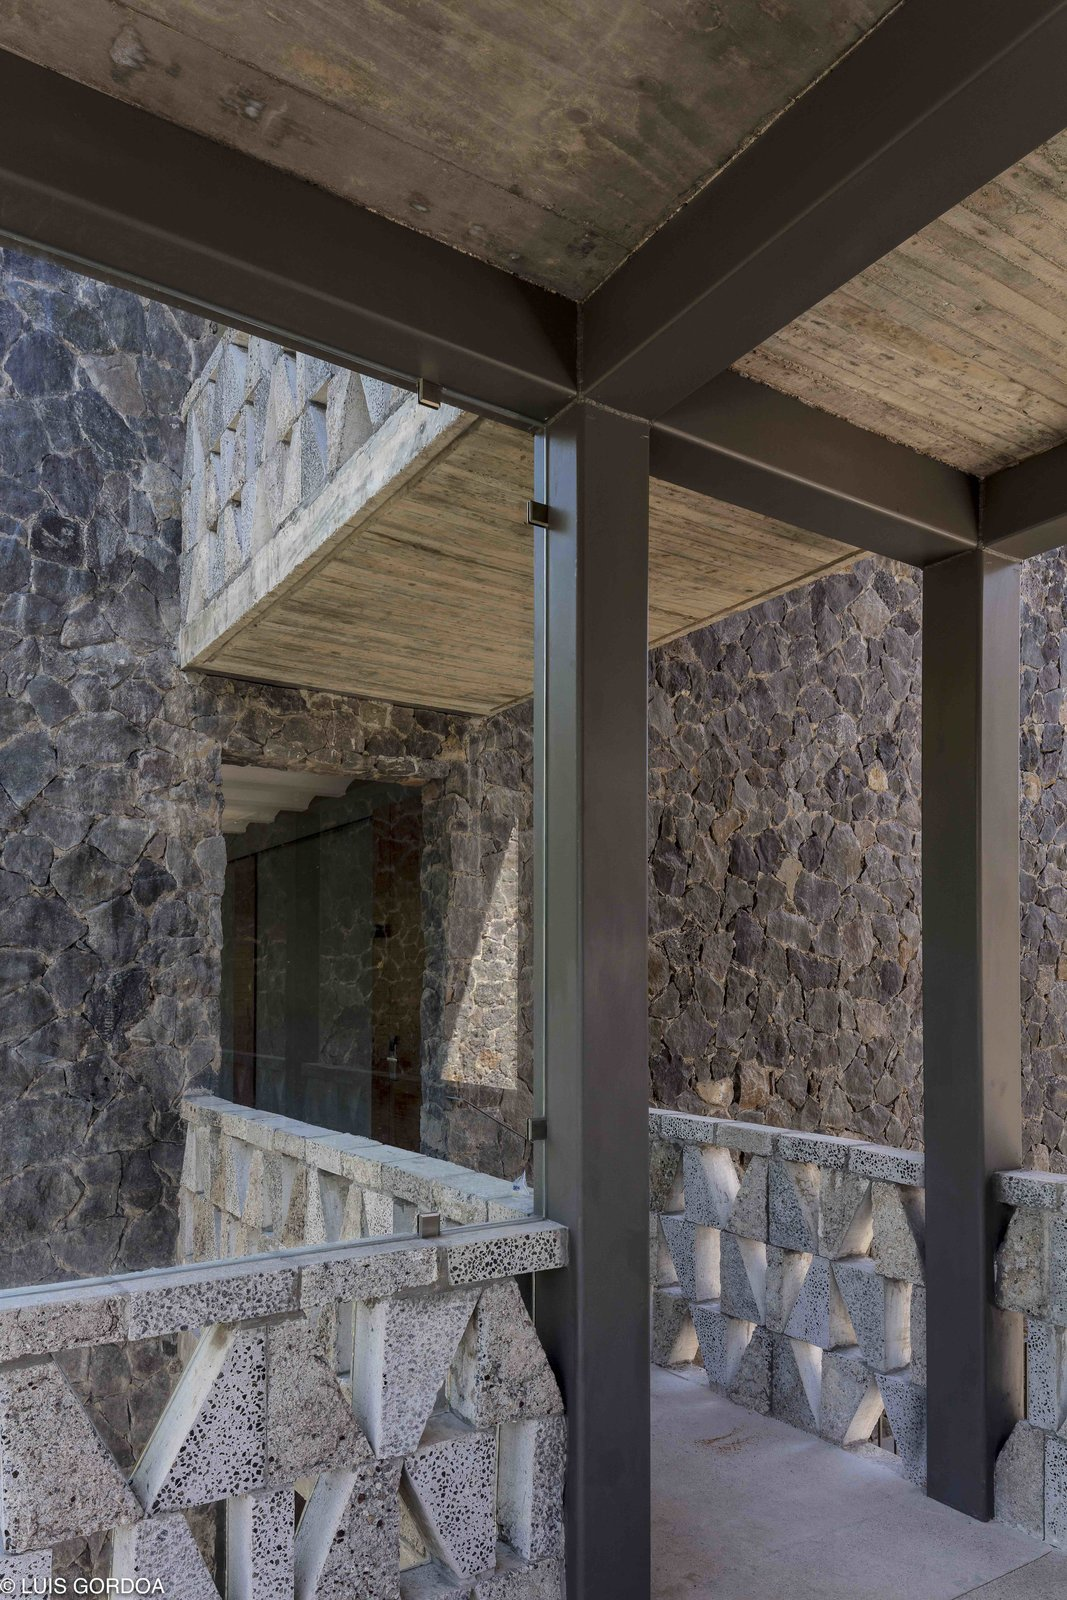 Photo 11 of 12 in A New Hotel in Morelos Combines Local Mexican Elements With Brutalist Architecture